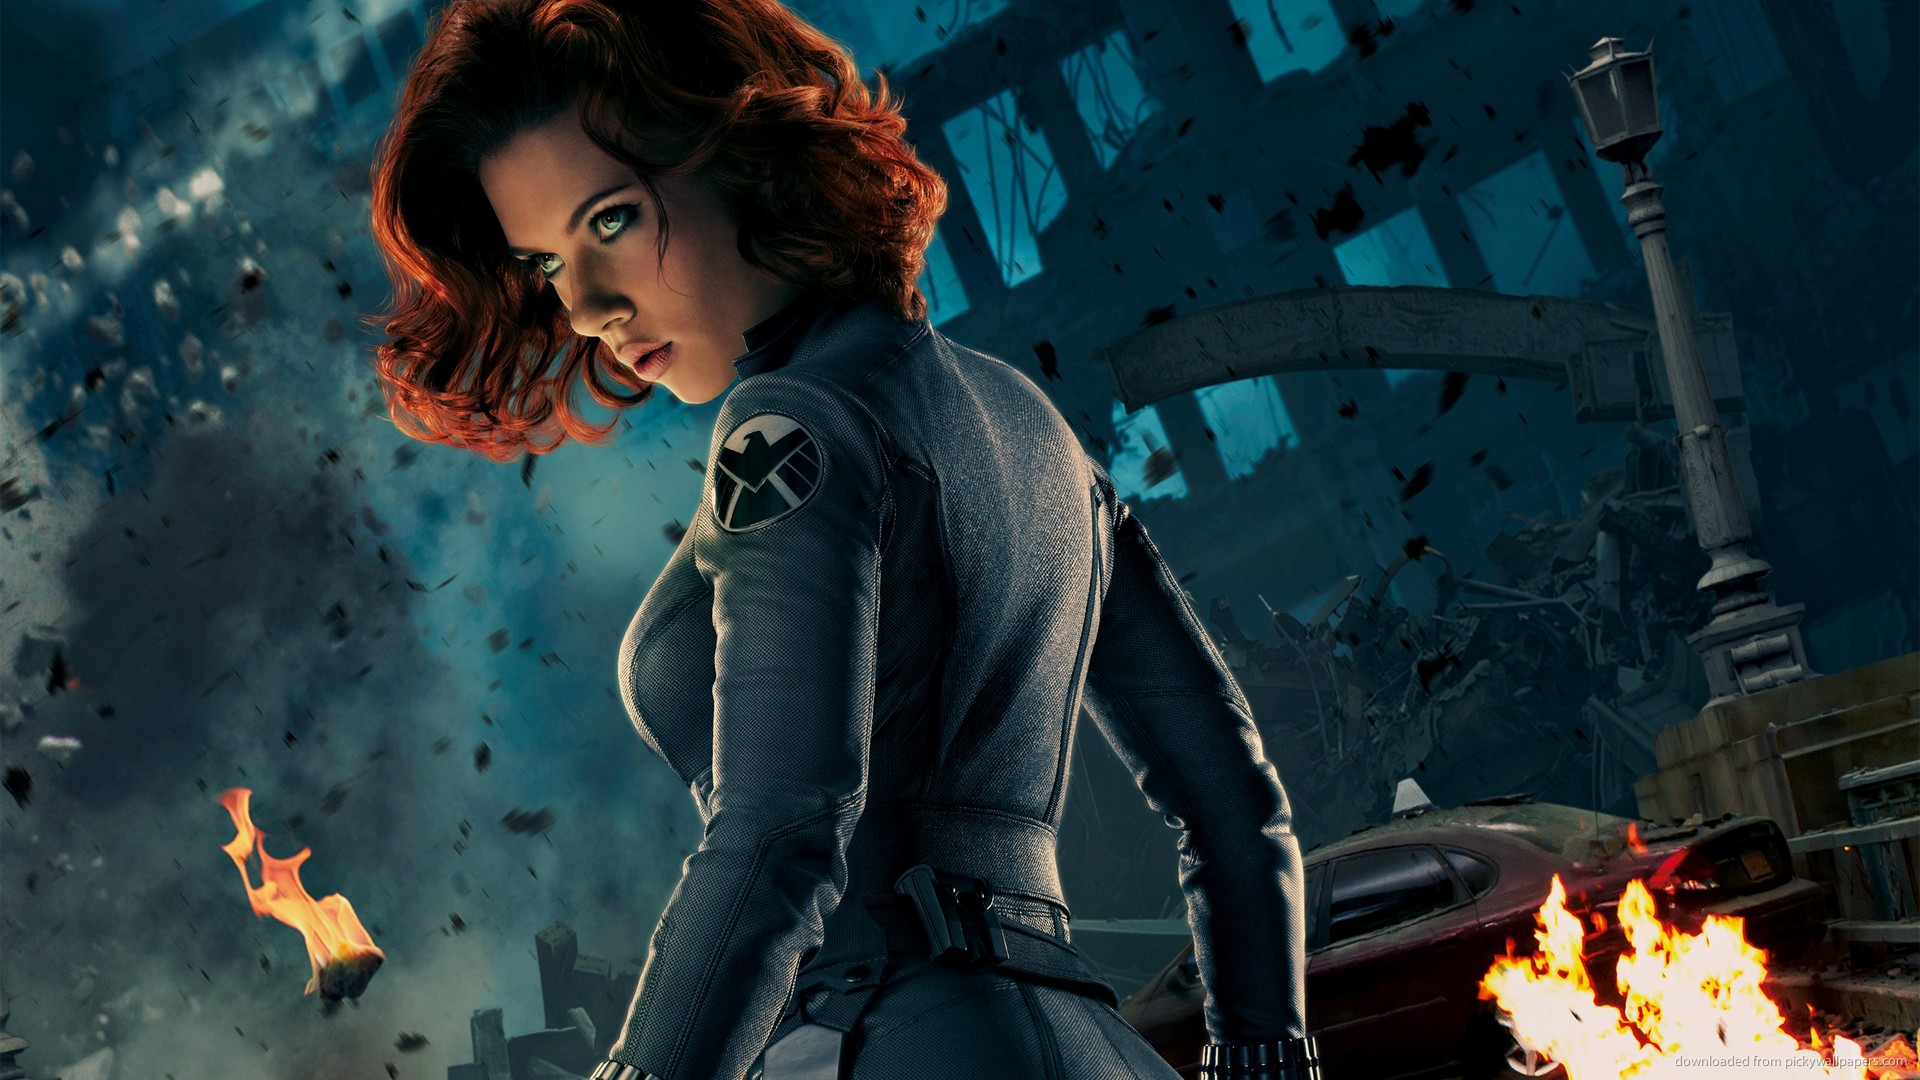 Now that Scarlett Johansson has made the character so memorable in the live action Marvel films, Black Widow is more popular than ever.